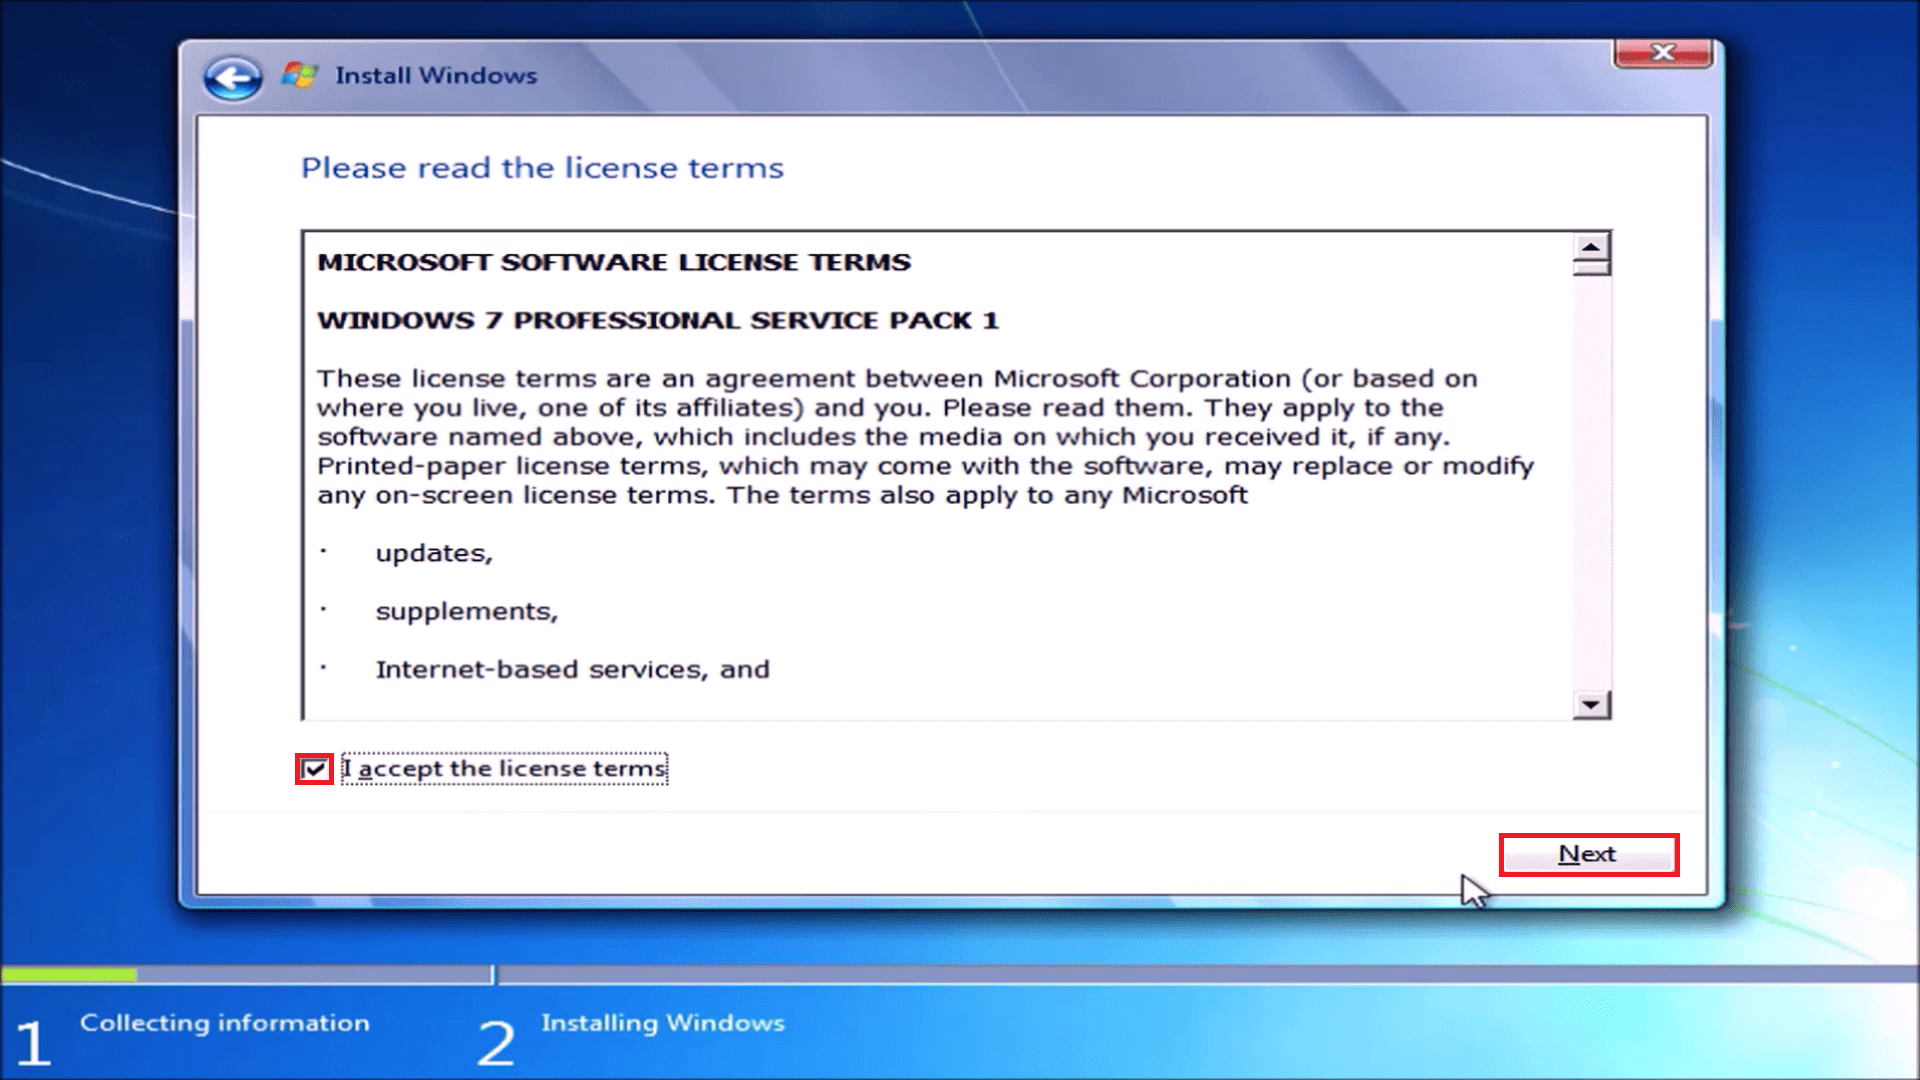 seans windows 7 installation guide